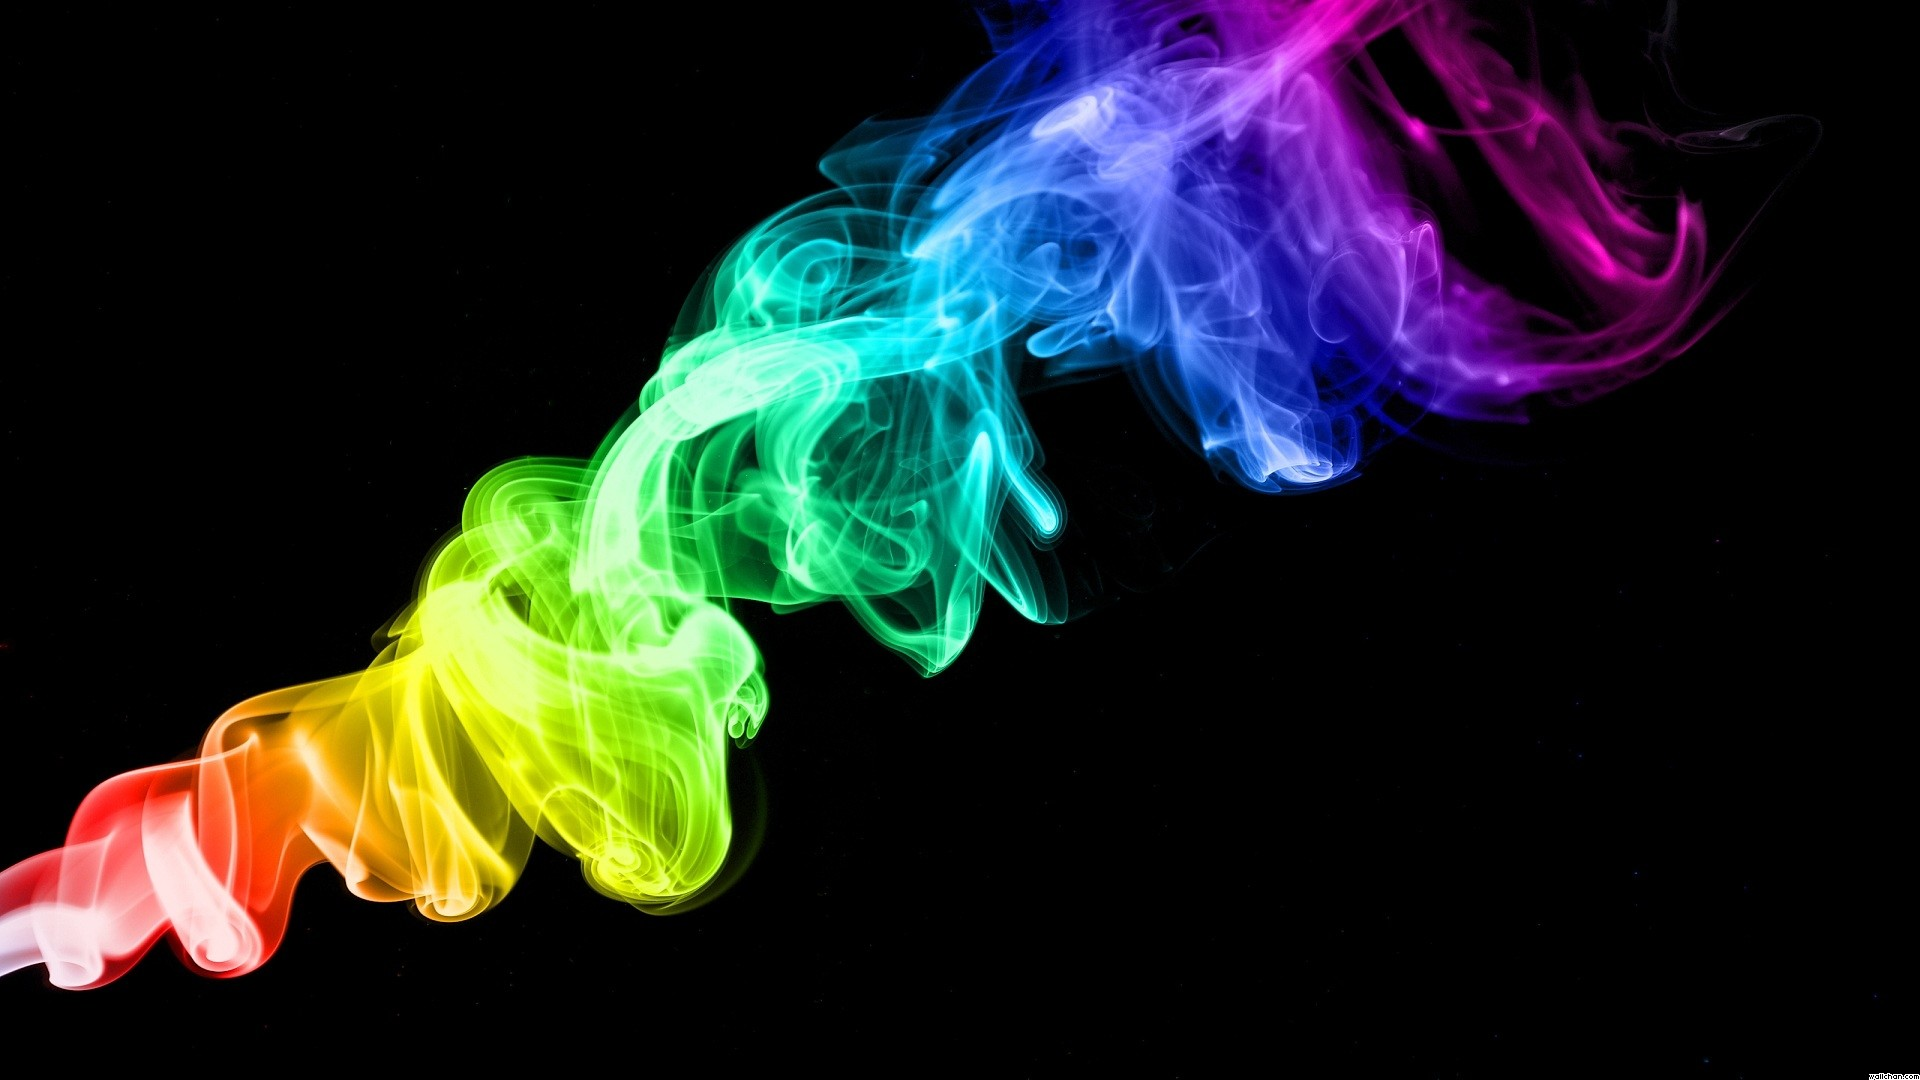 Colorful smoke trails in black background – Spectrum by colorful smoke  trails in black background abstract wallpaper